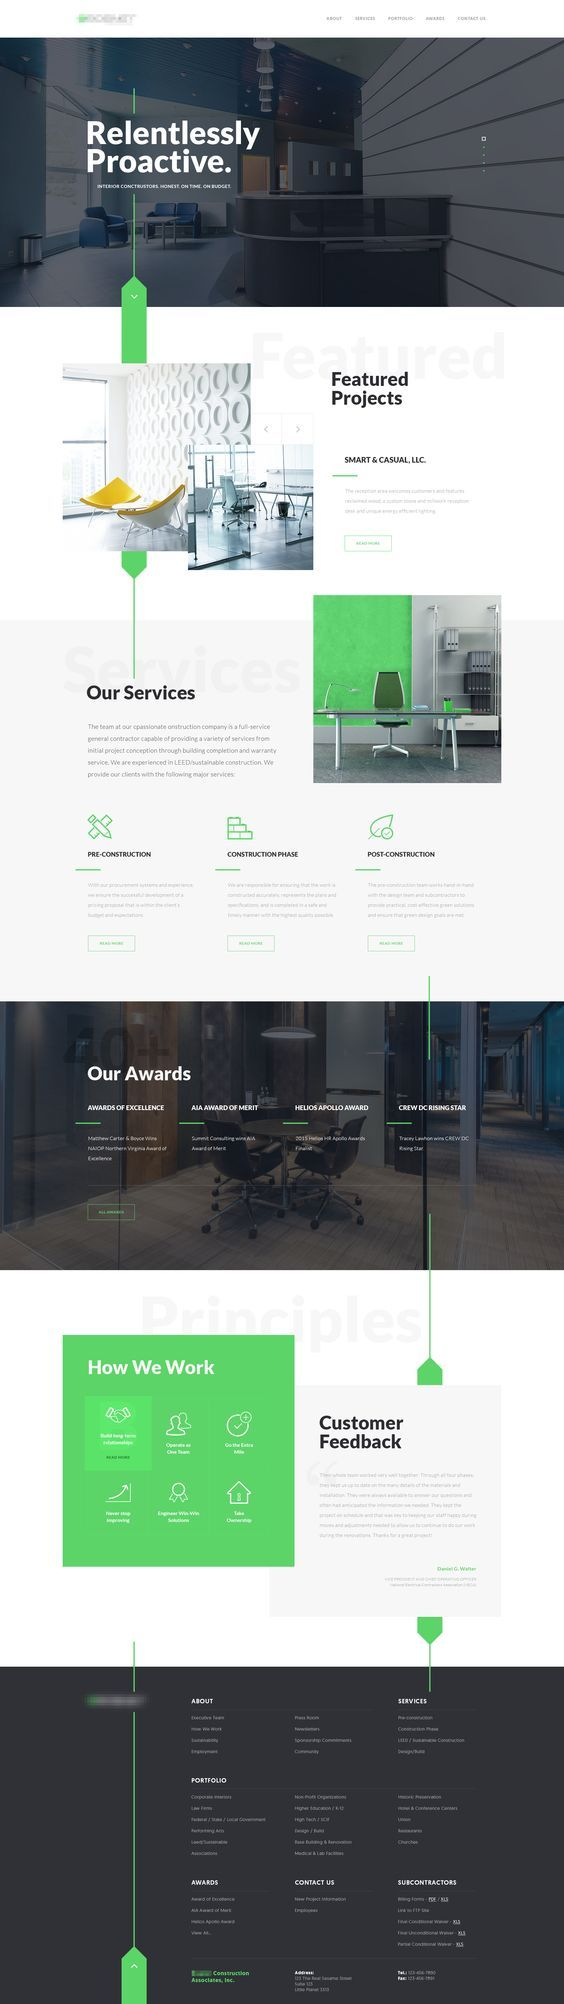 Interior Construction Company Website Design: I like the fluidity on this one-pager. It has everything you need on the homepage. The top menu could just jump to each section on this page.